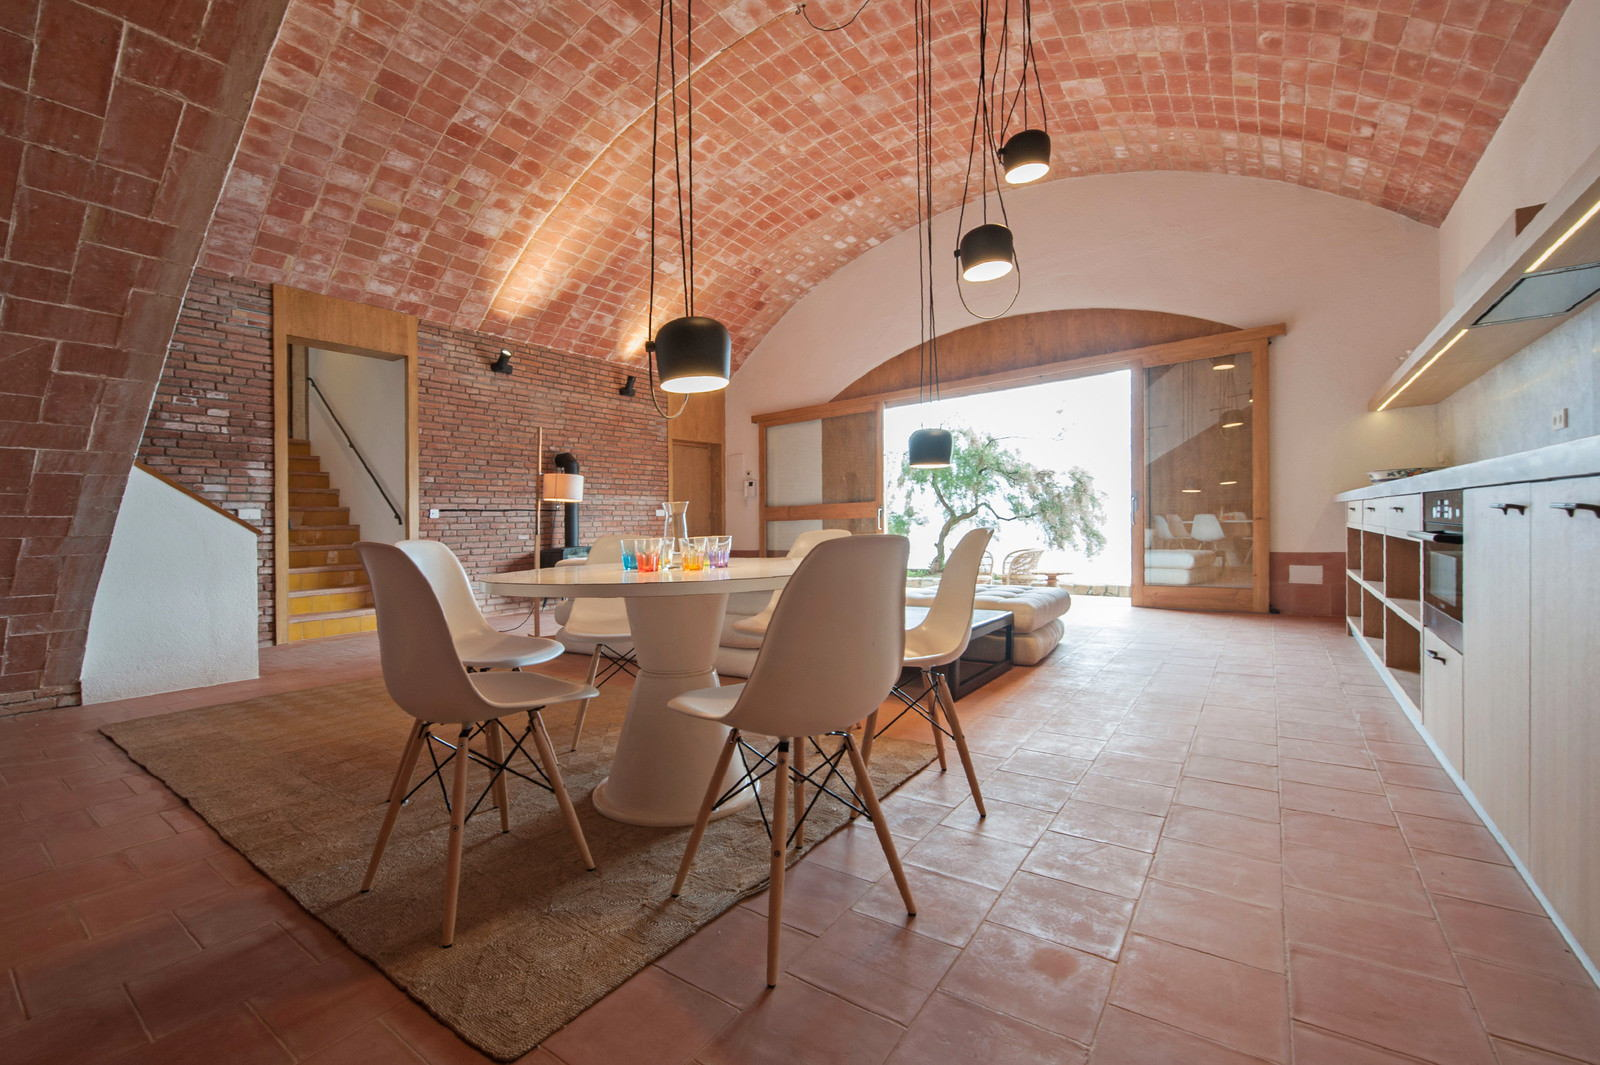 Renovation-of-a-private-house-just3ds.com-2